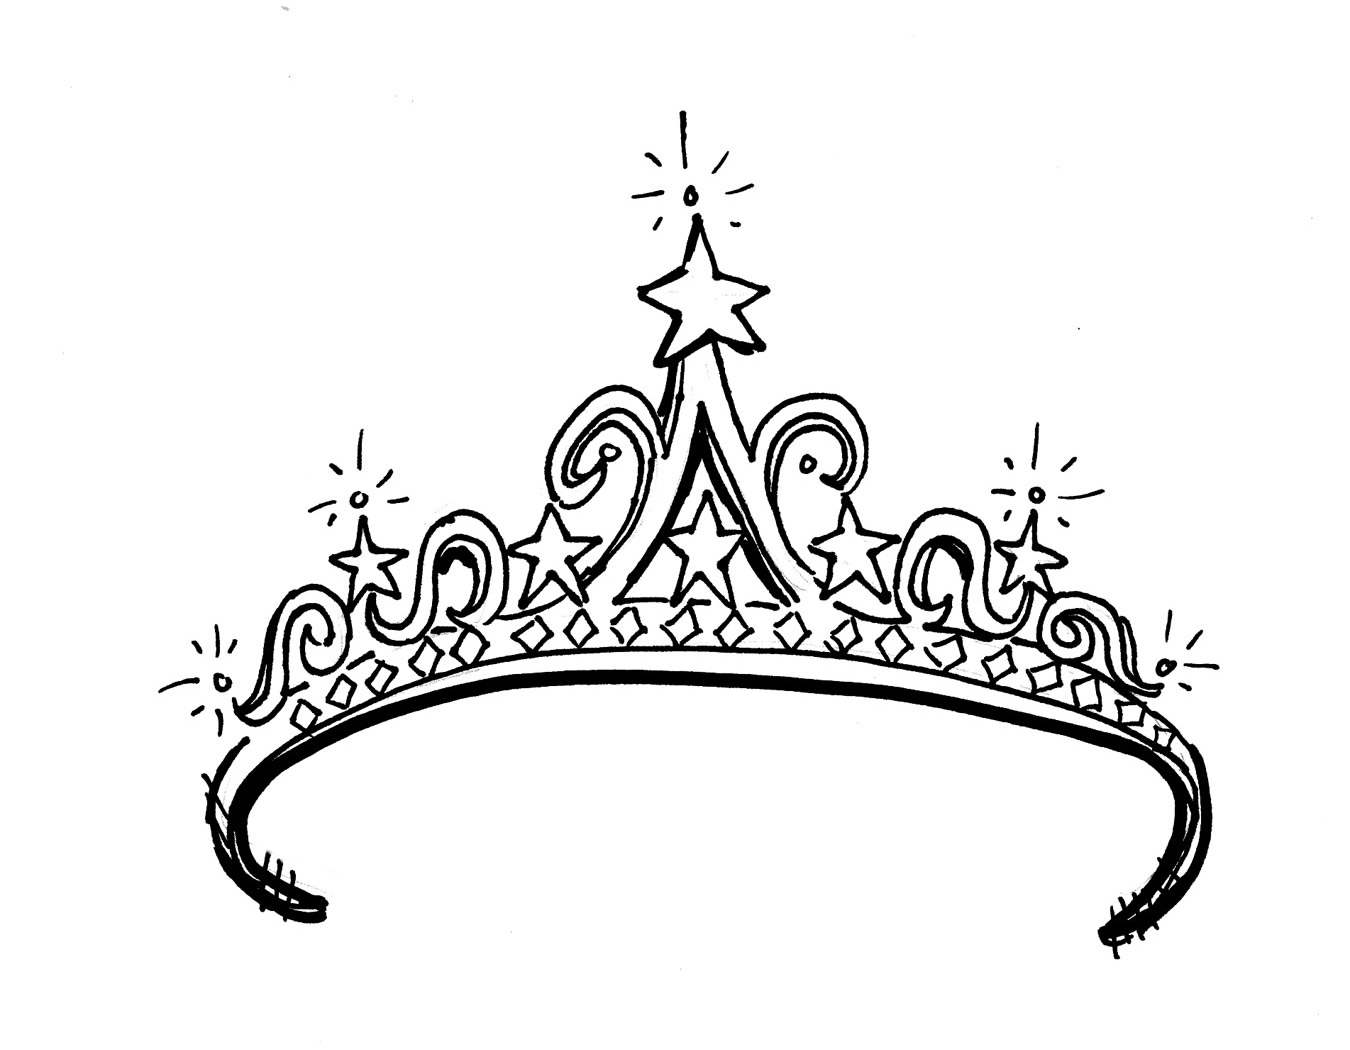 tiara coloring page free cliparts that you can download to you EzCBgn clipart in addition elsa coloring pages online 1 on elsa coloring pages online including elsa coloring pages online 2 on elsa coloring pages online along with princess tiaras and crowns clip art on elsa coloring pages online as well as fever happy birthday anna frozen on elsa coloring pages online